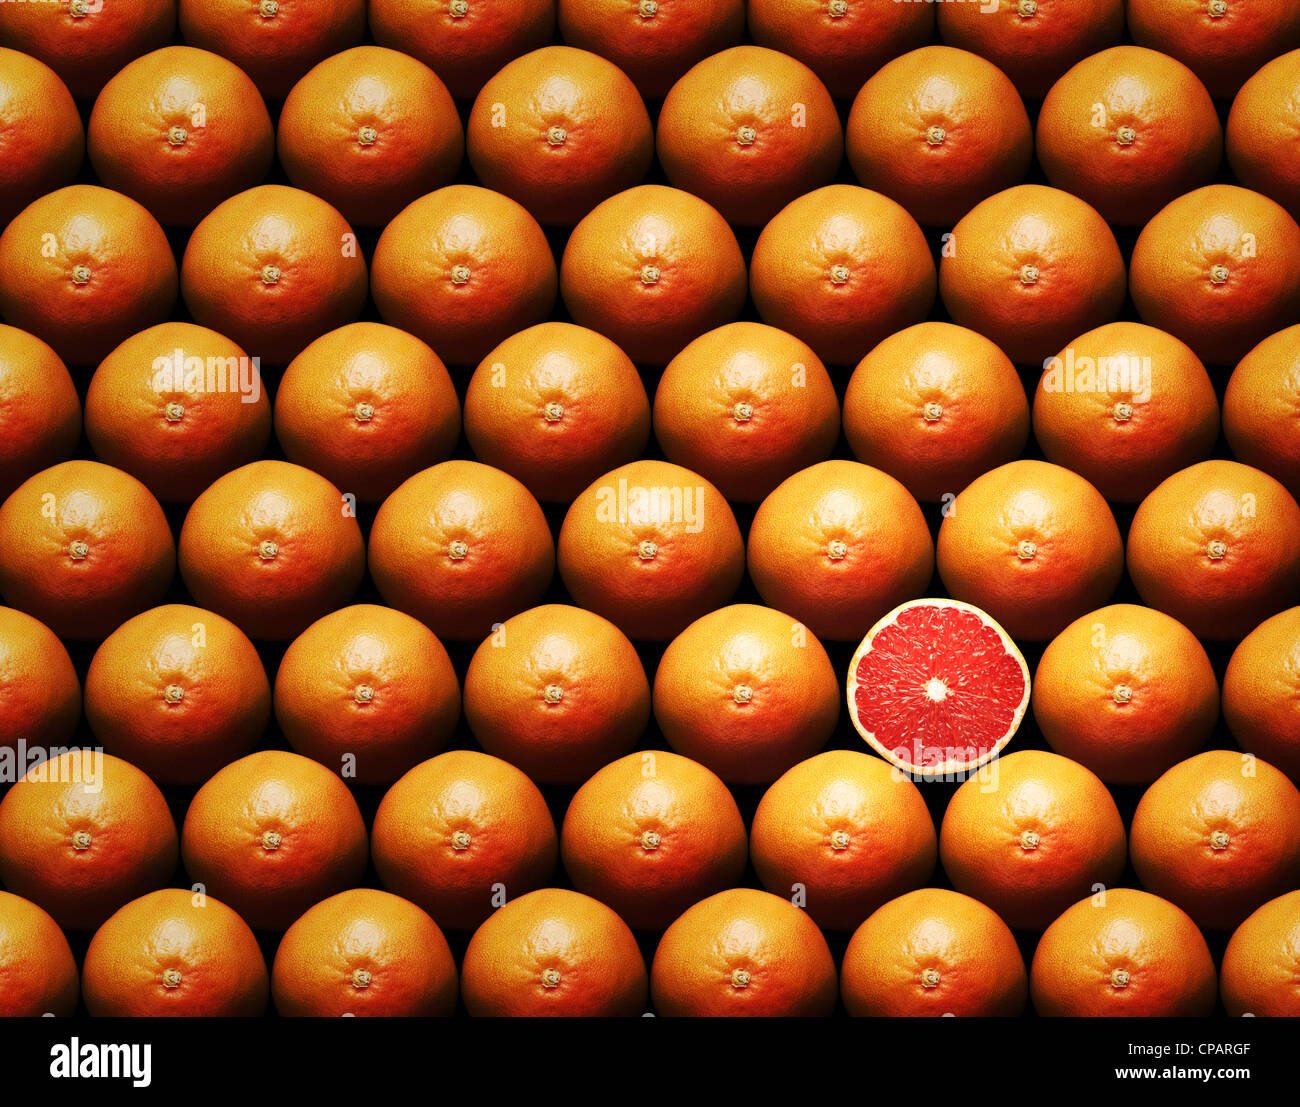 Grapefruit slice amongst many whole grapefruits - Stock Image